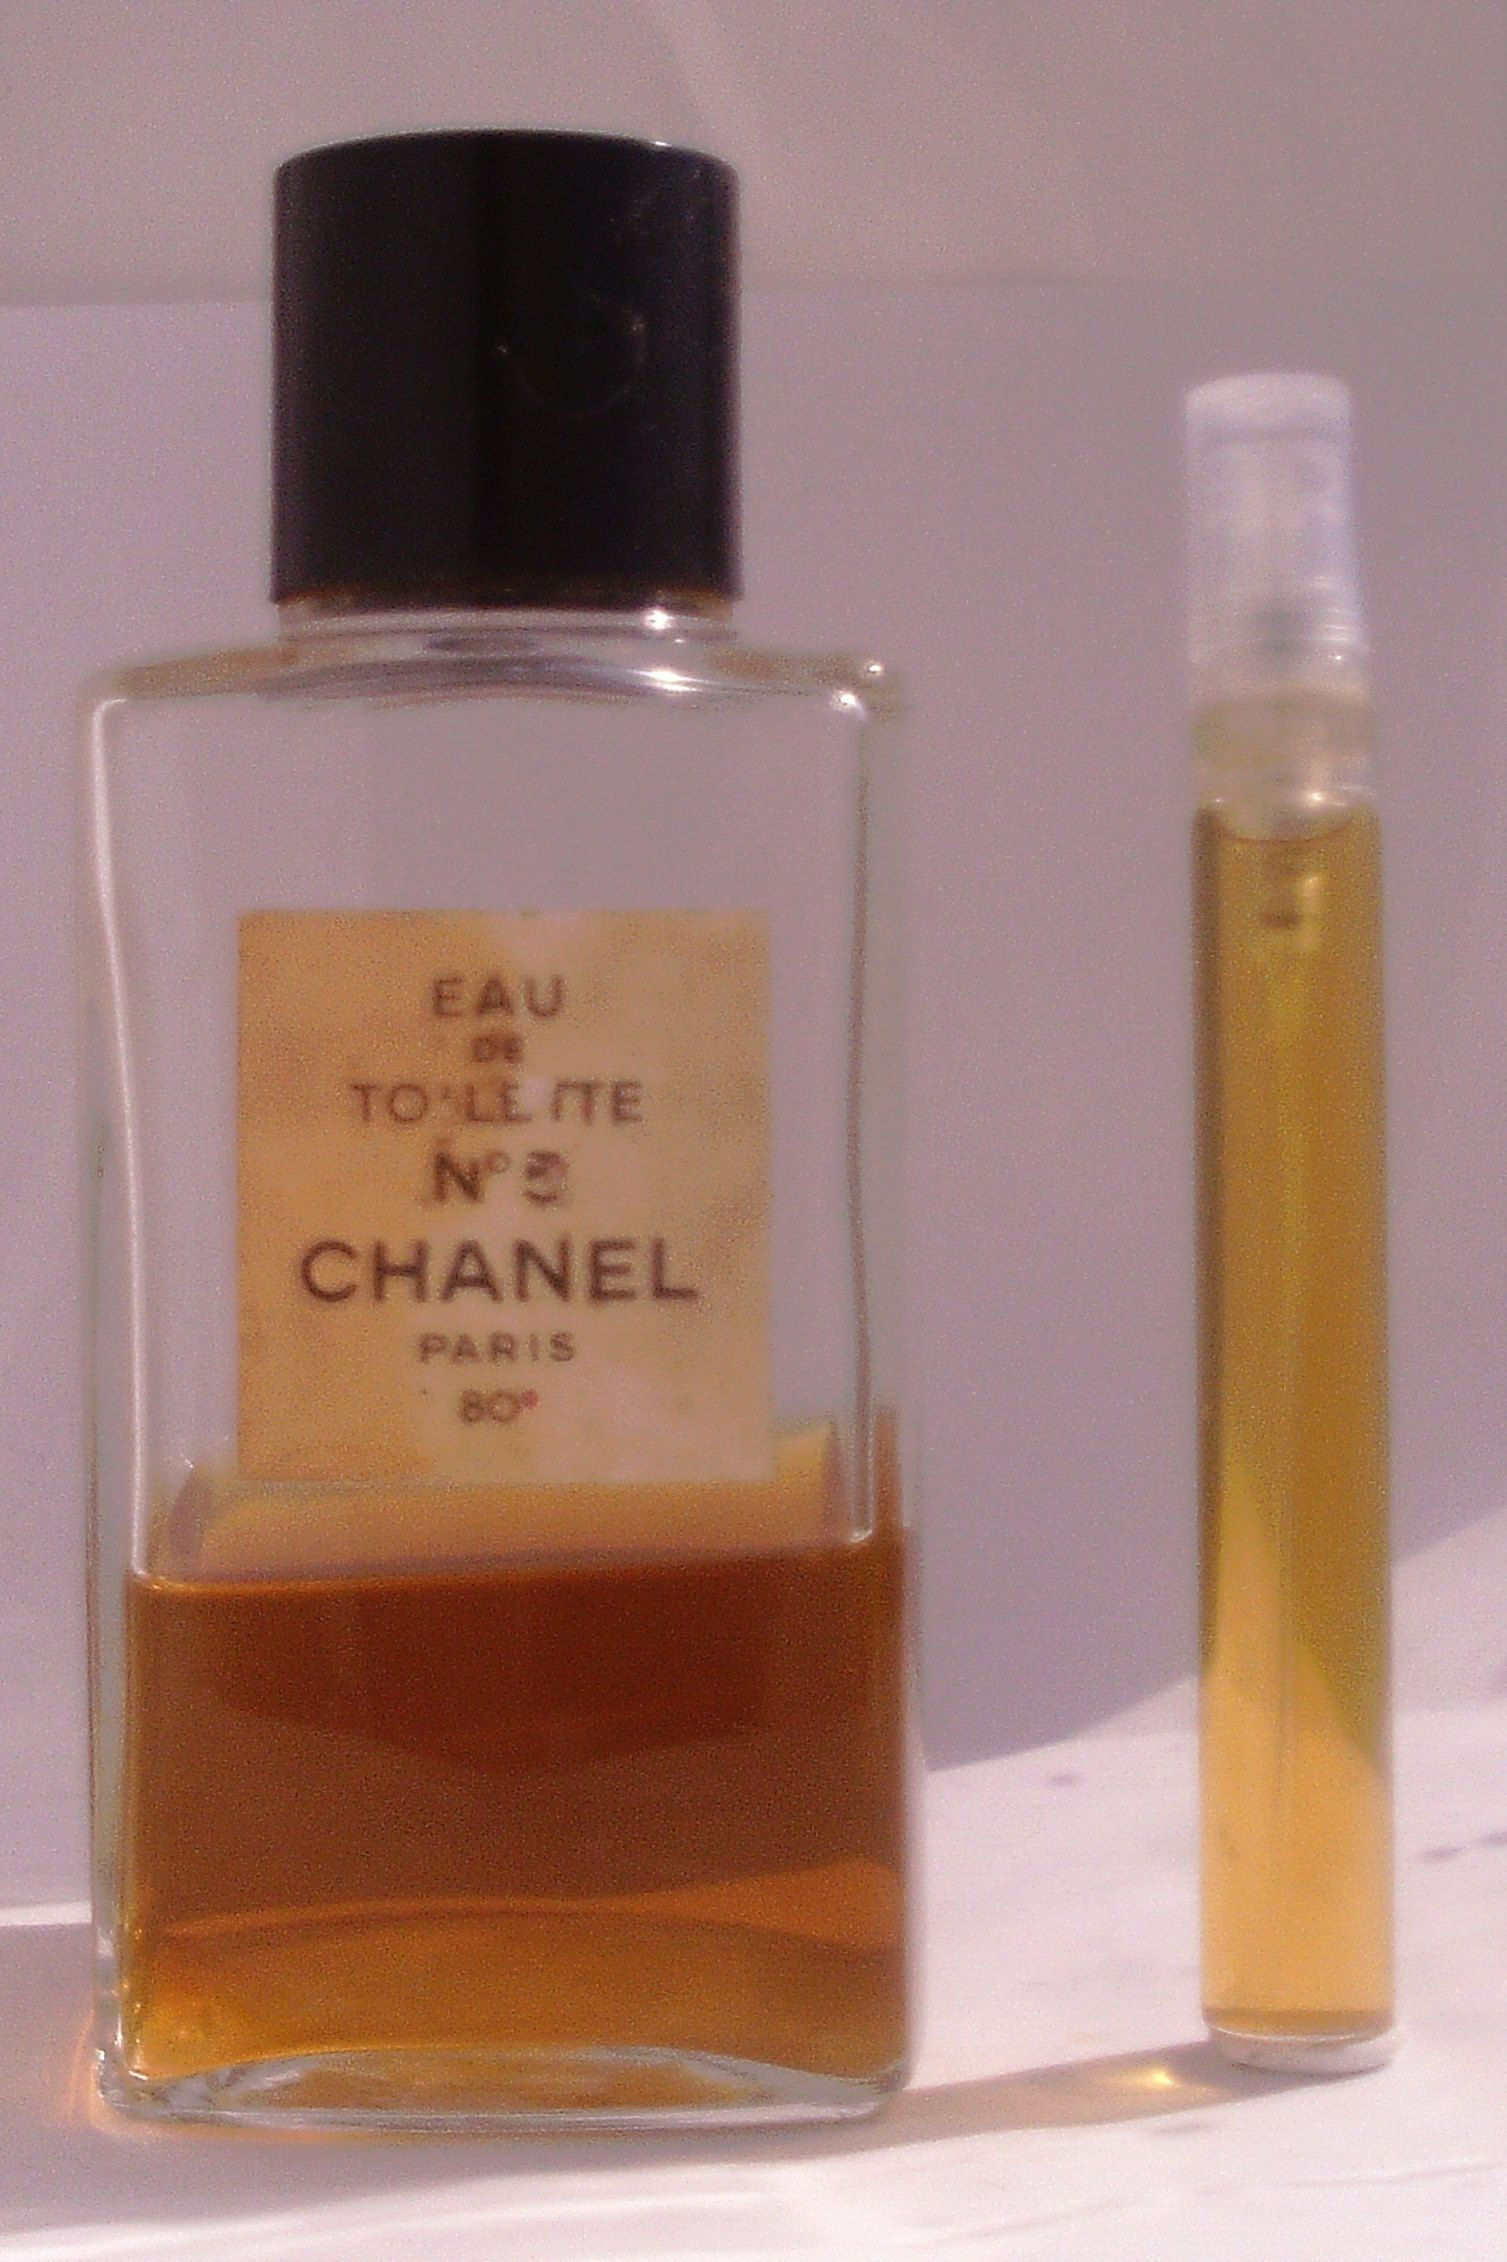 Chanel No 5 Perfume Vintage Eau De Toilette 10ml Purse Size Atomizer Vial Spray By Philipcares On Etsy Vintage Perfume Travel Size Products Eau De Toilette